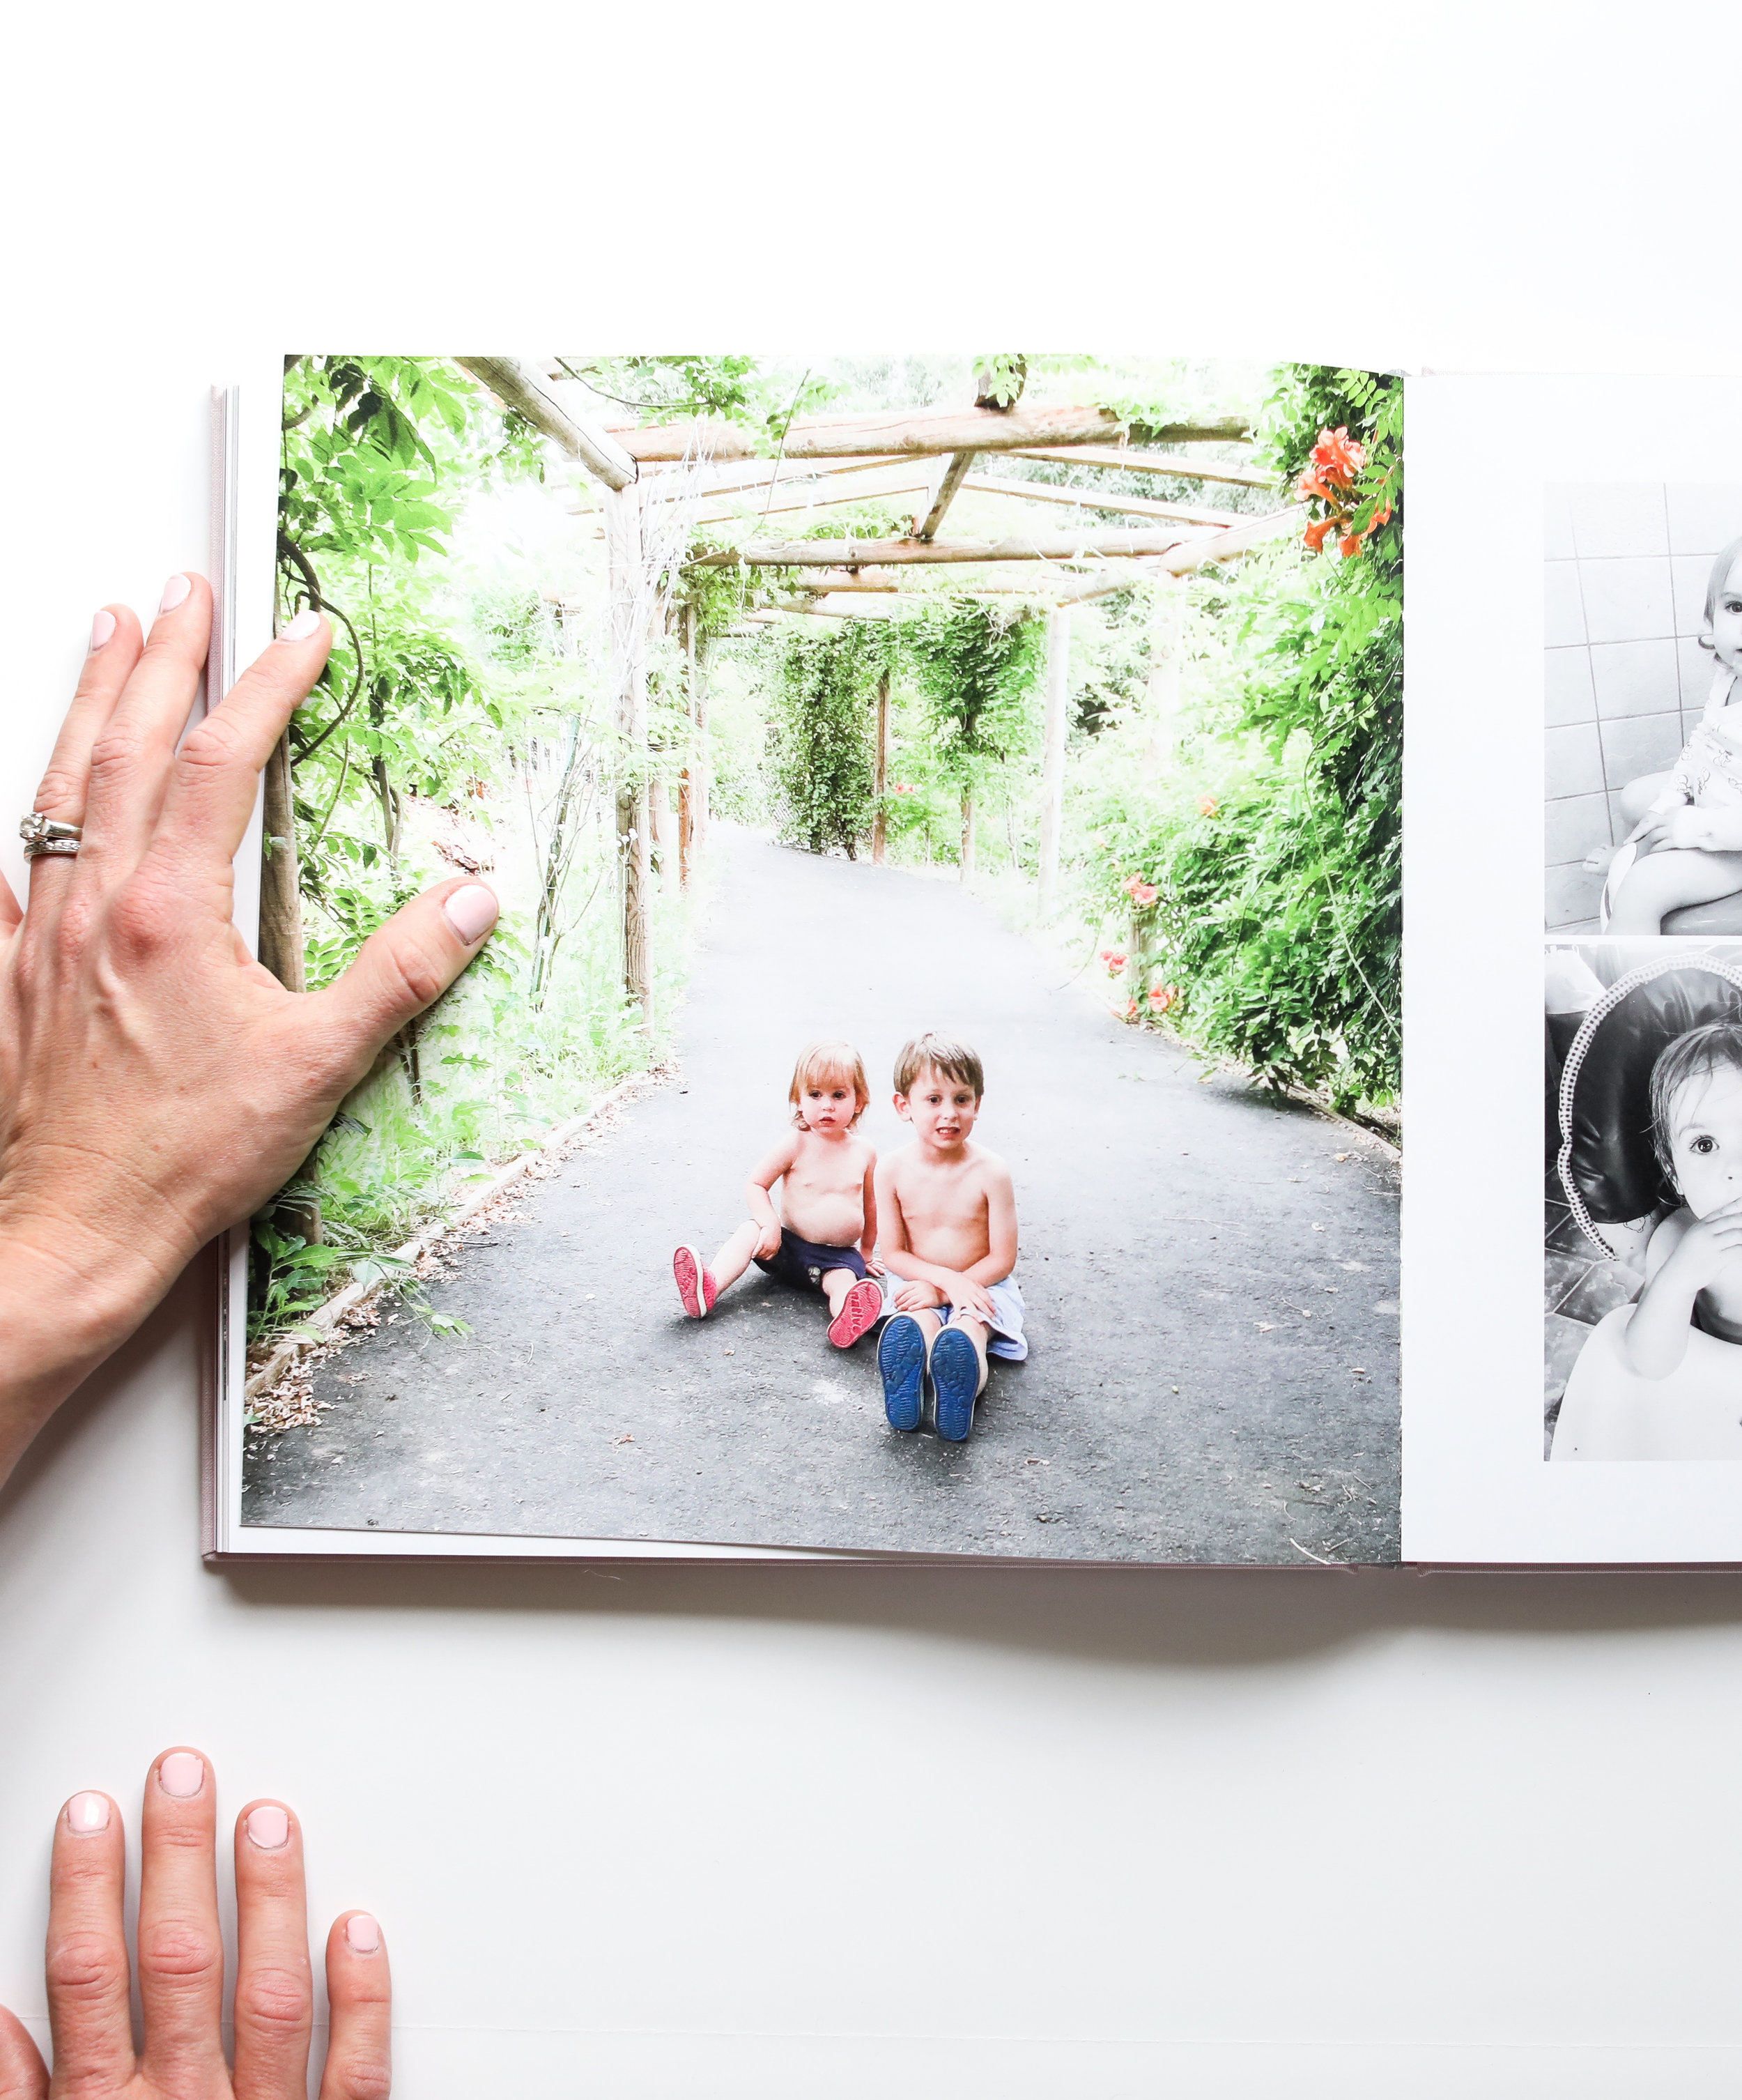 How to create a photo book step by step